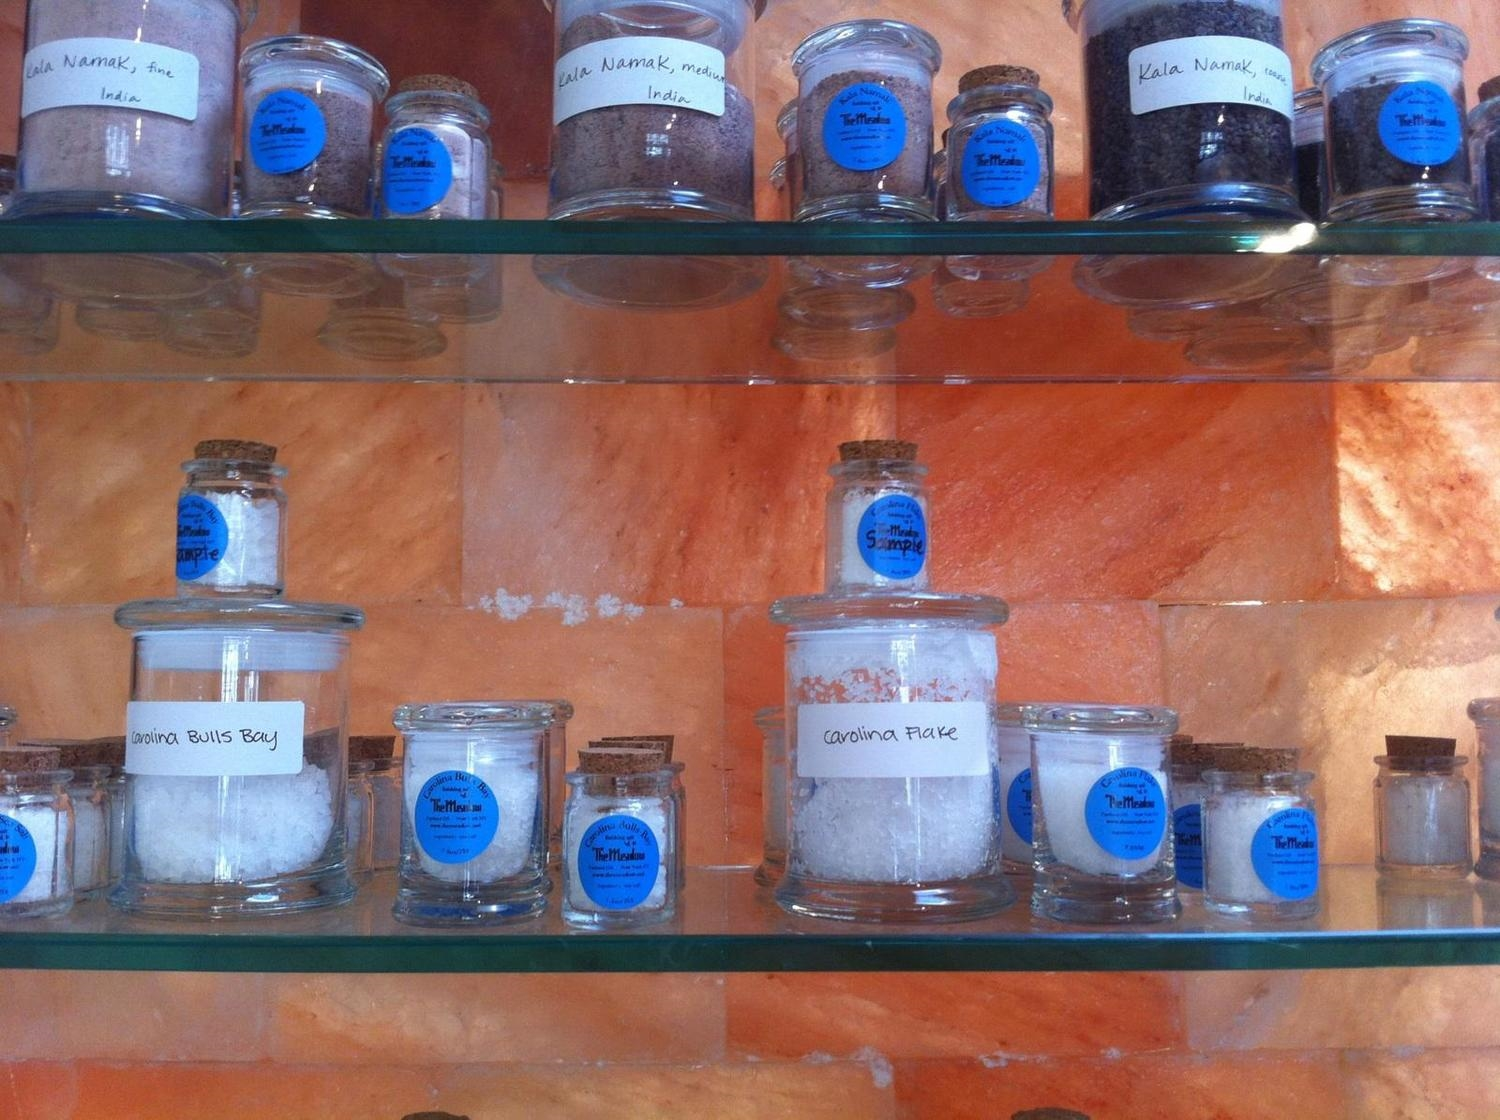 Carolina Sea Salt and Carolina Flake on the shelf at The Meadow